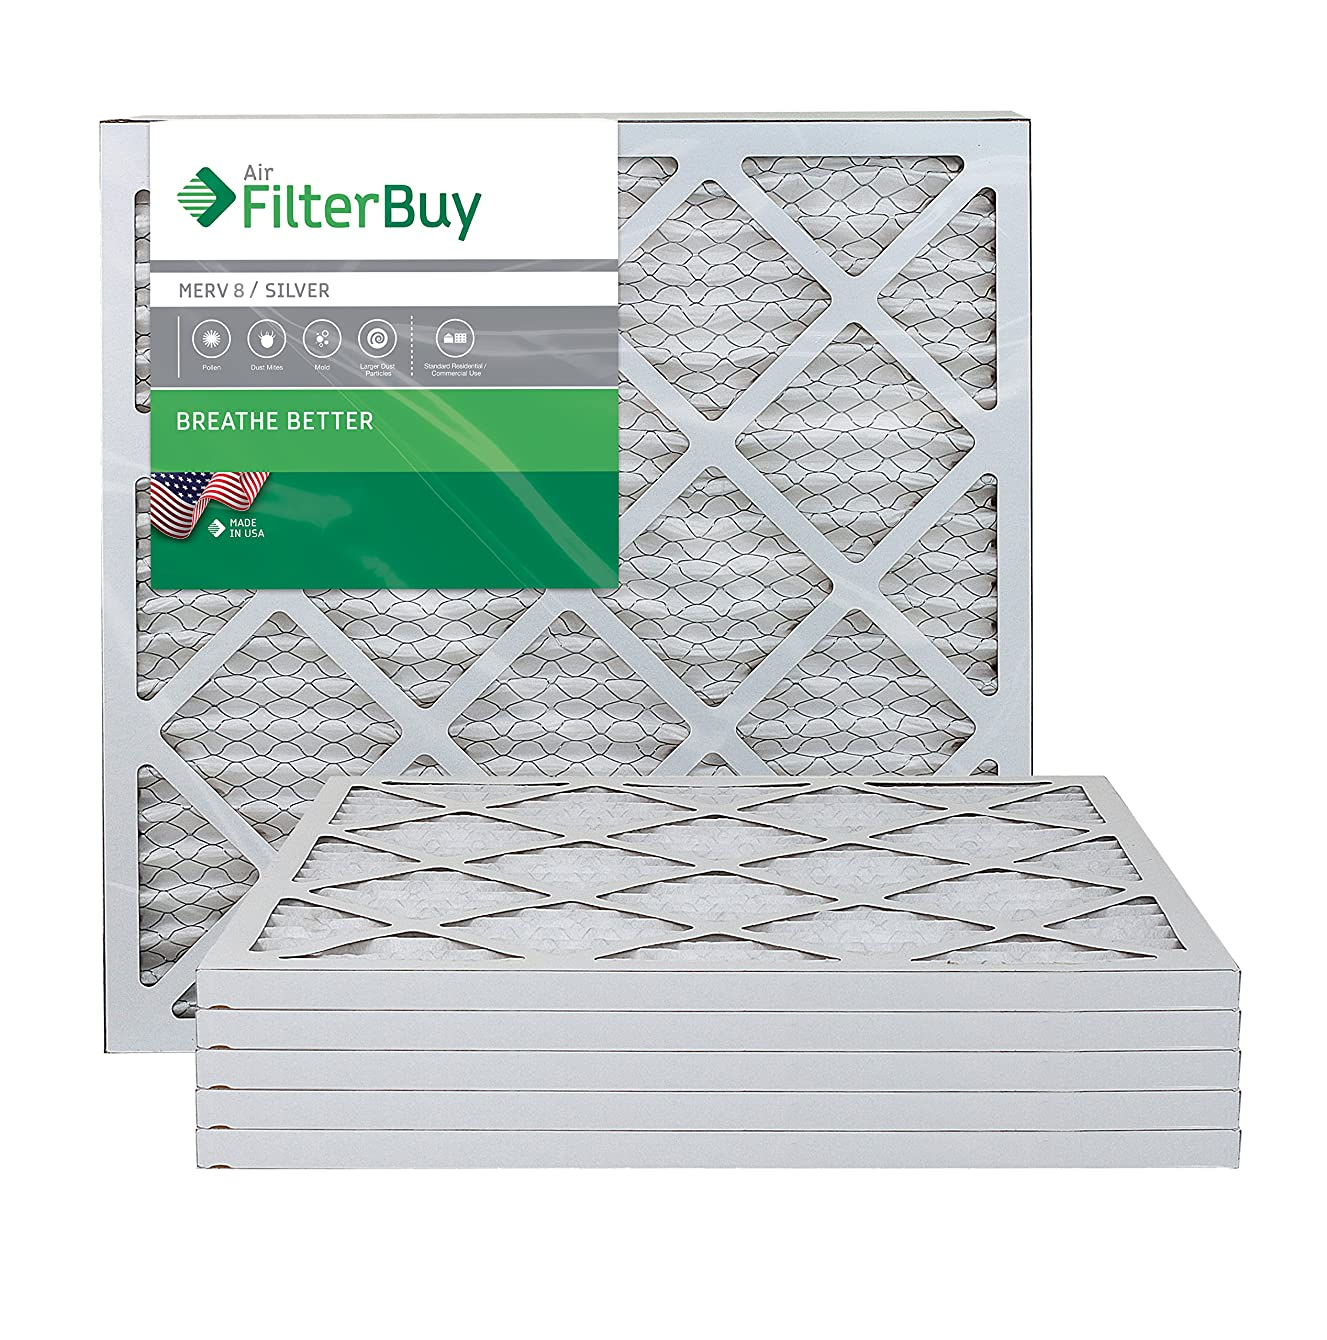 FilterBuy 21x22x1 MERV 8 Pleated AC Furnace Air Filter, (Pack of 6 Filters), 21x22x1 – Silver